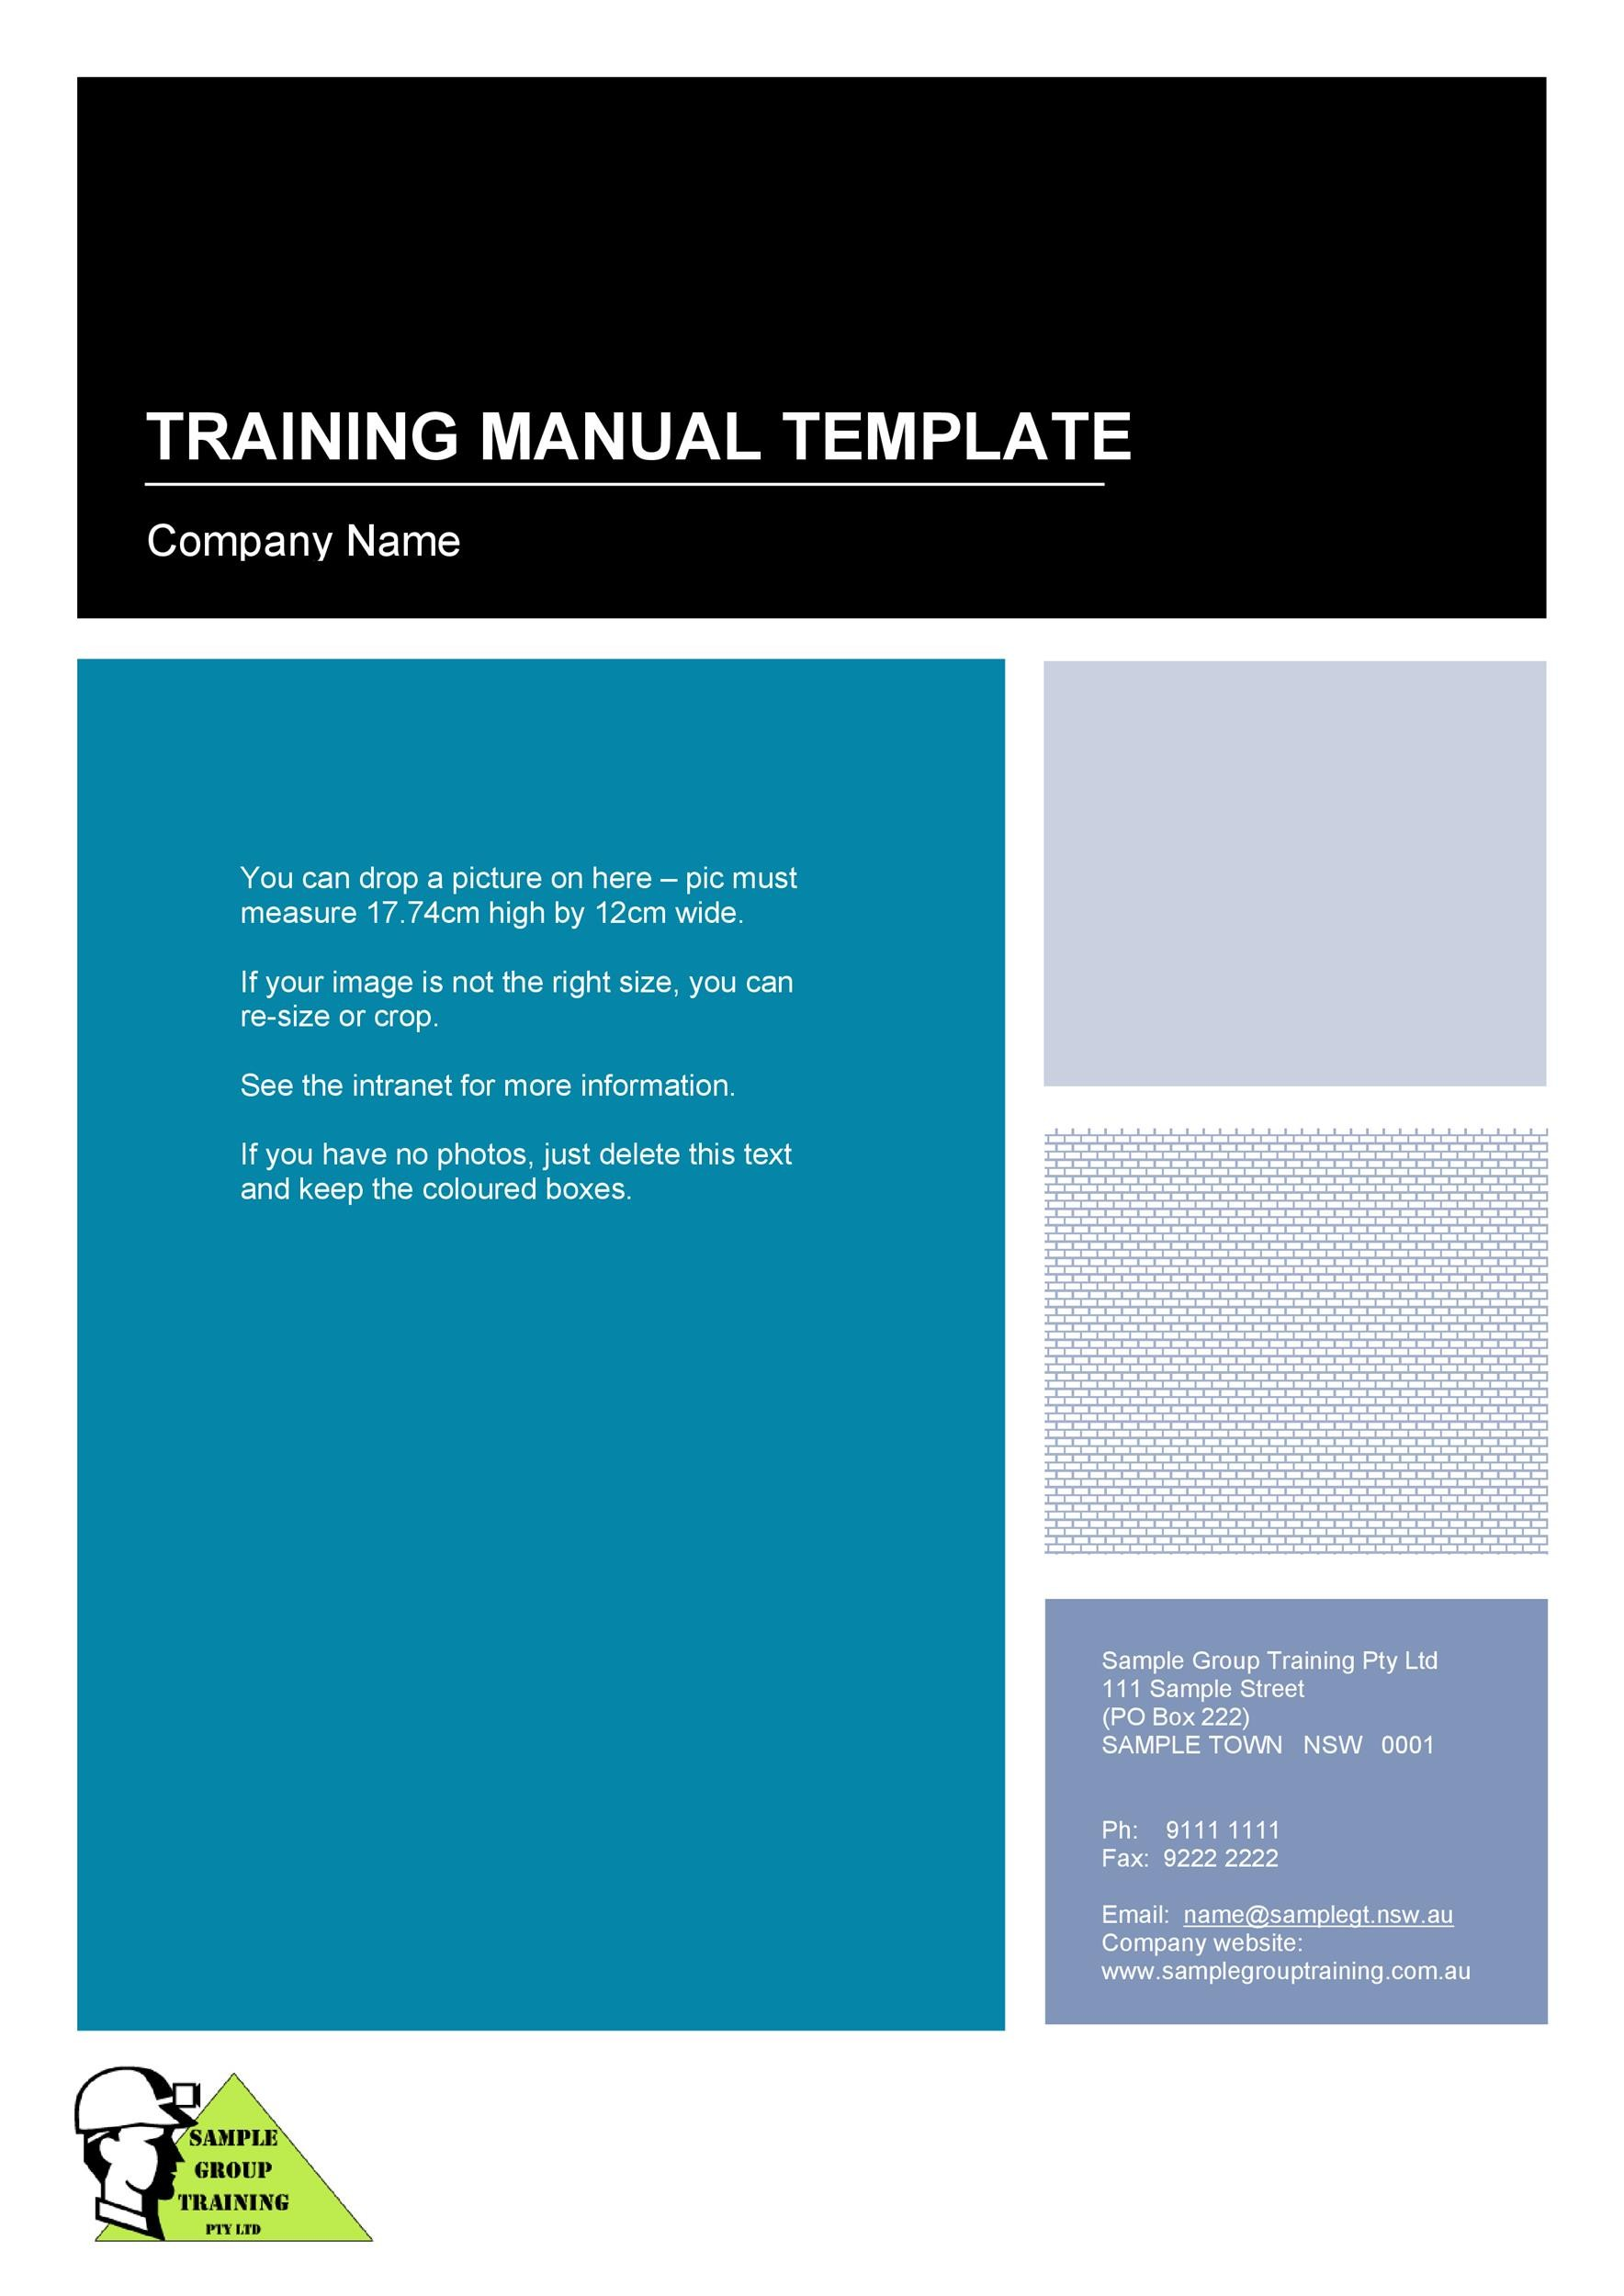 Training manual 40 free templates examples in ms word free training manual template 01 maxwellsz